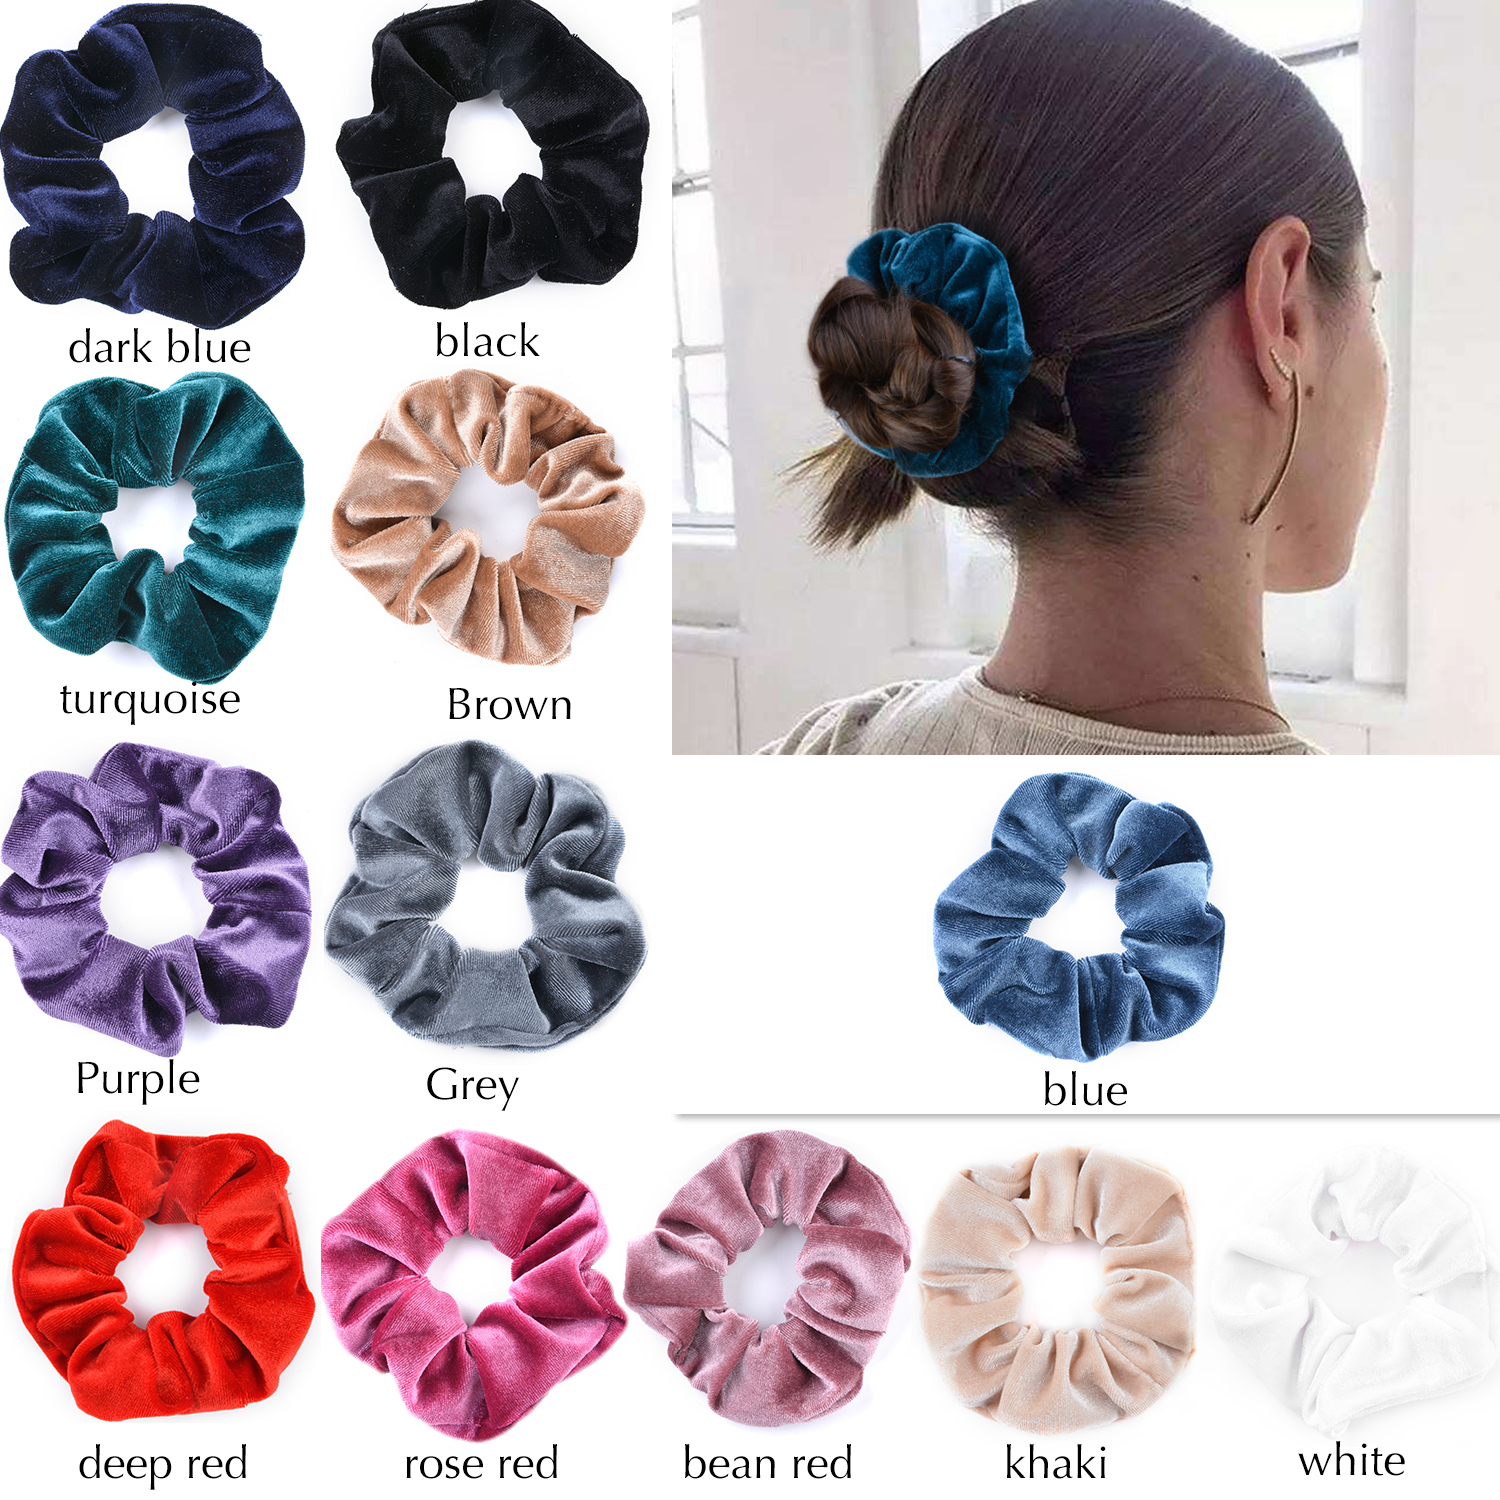 12Pcs Hair Scrunchies Set, Aniwon No Damage Traceless Elastic Scrunchies Bobbles Hair Ties Ponytail Holder Accessories for Girls Kids Women